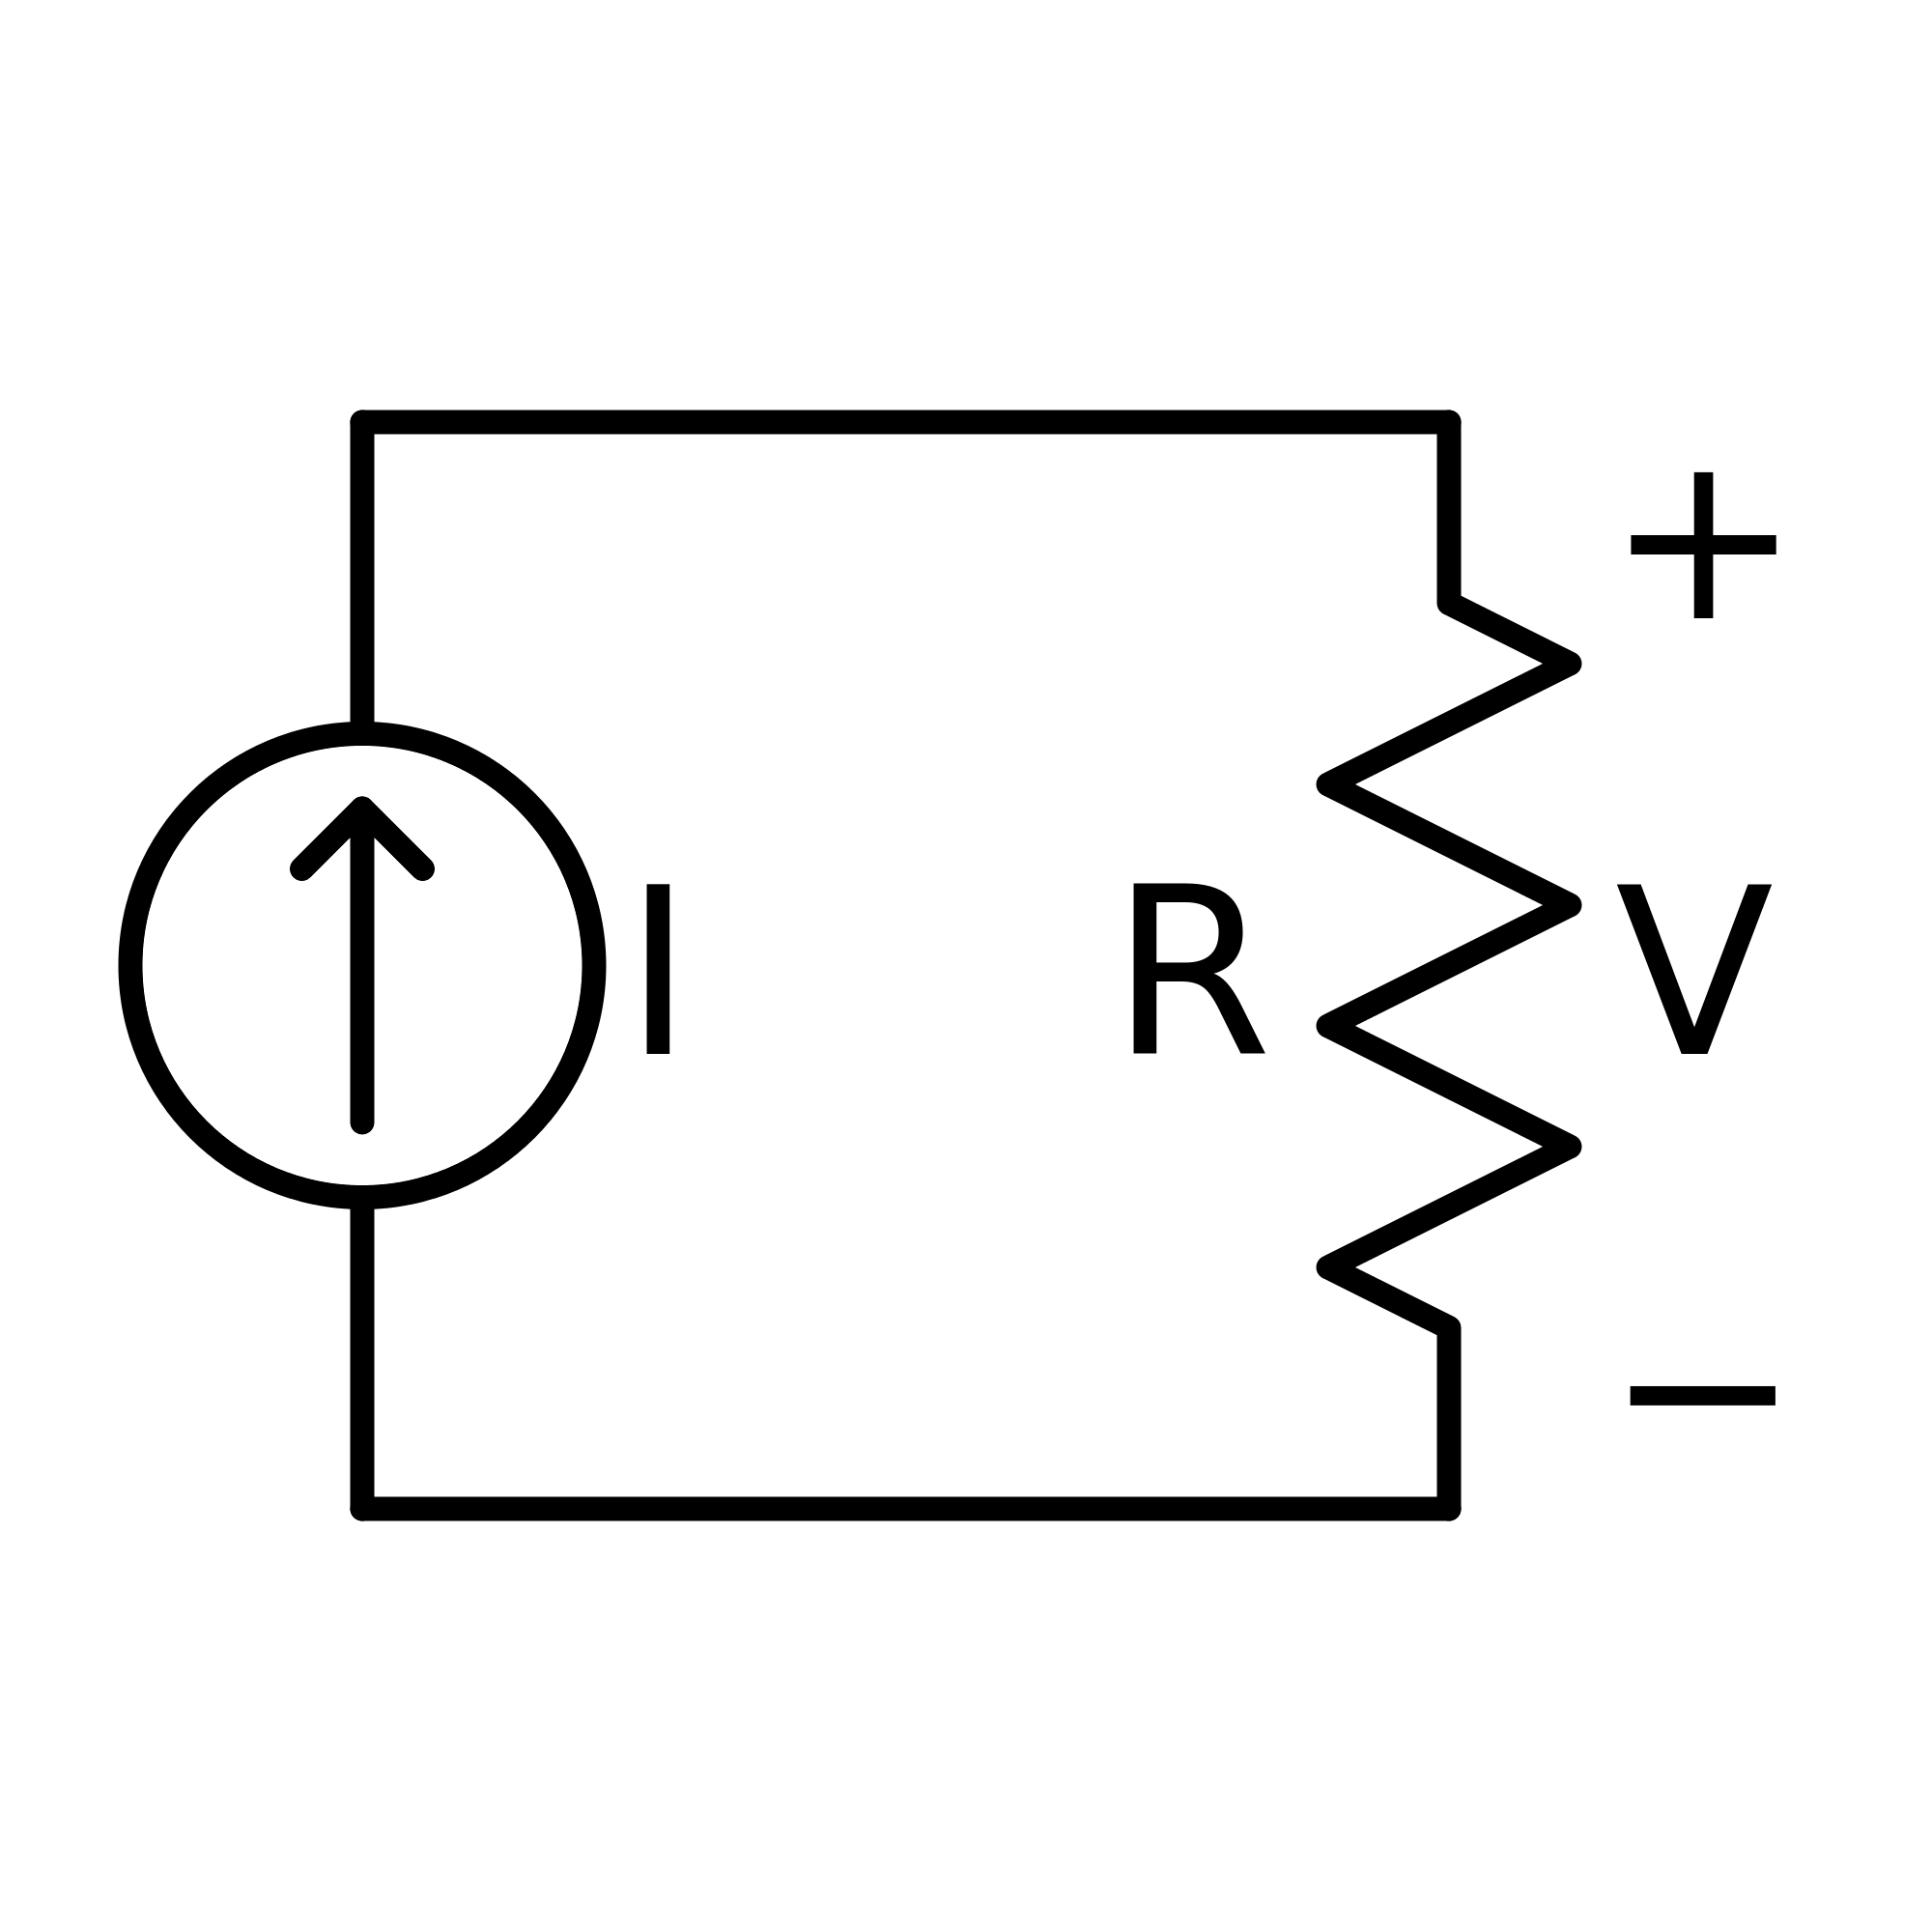 Schematic Symbol For Battery